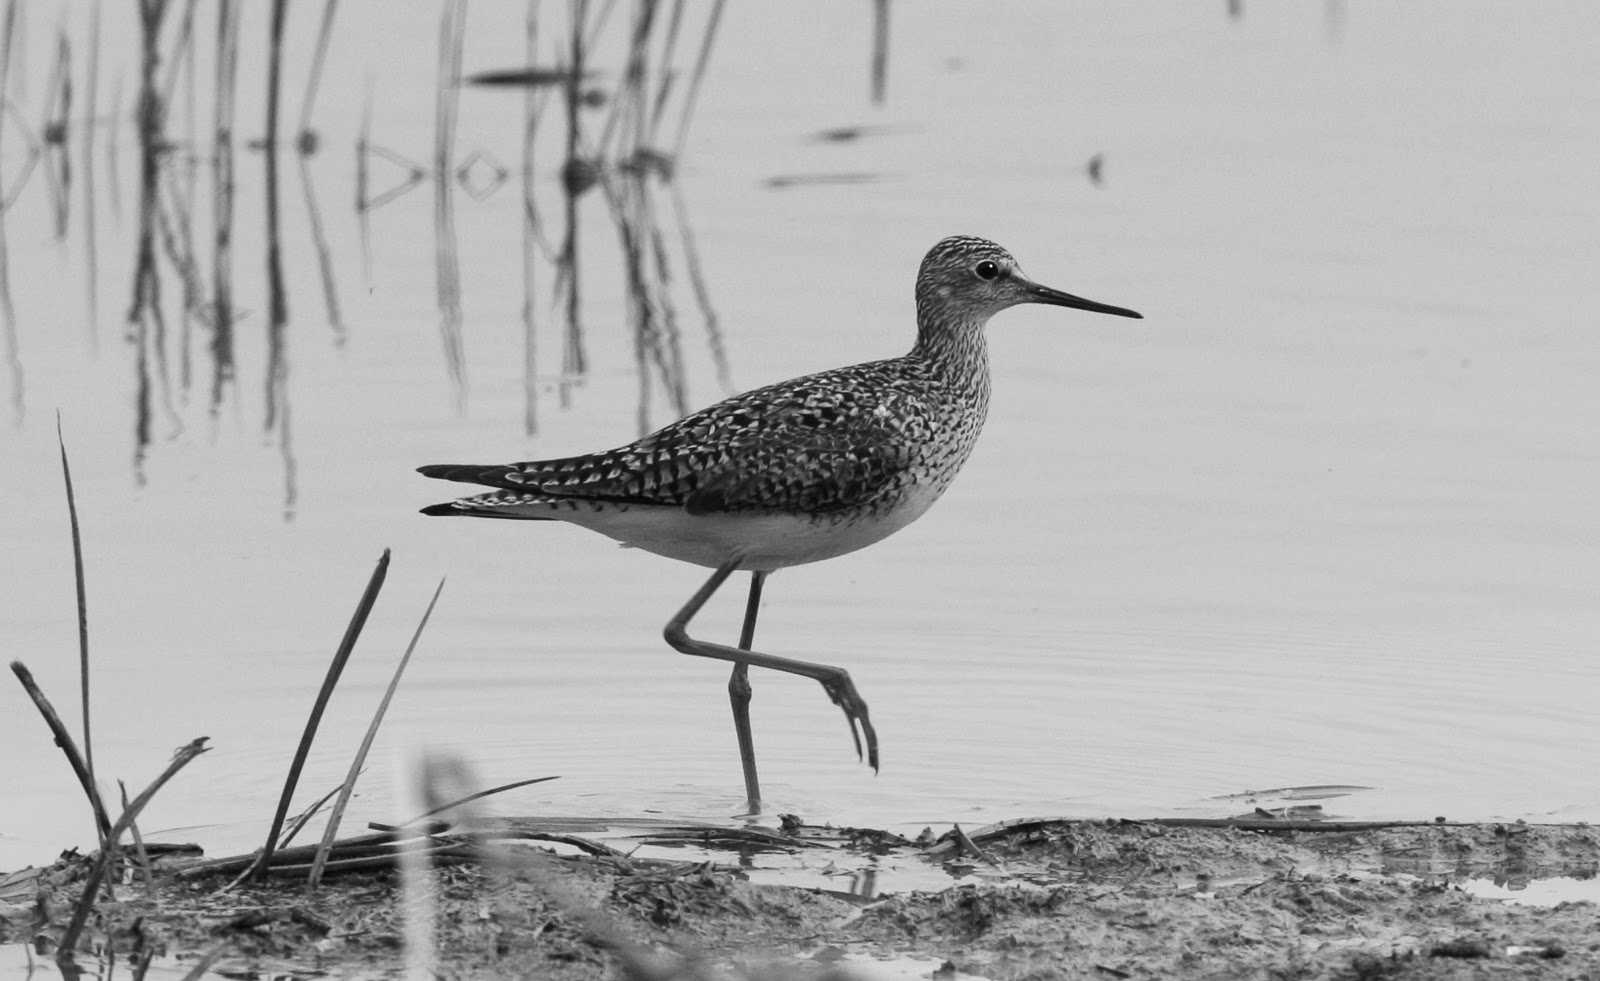 Birding with Kenn and Kimberly: August 2012